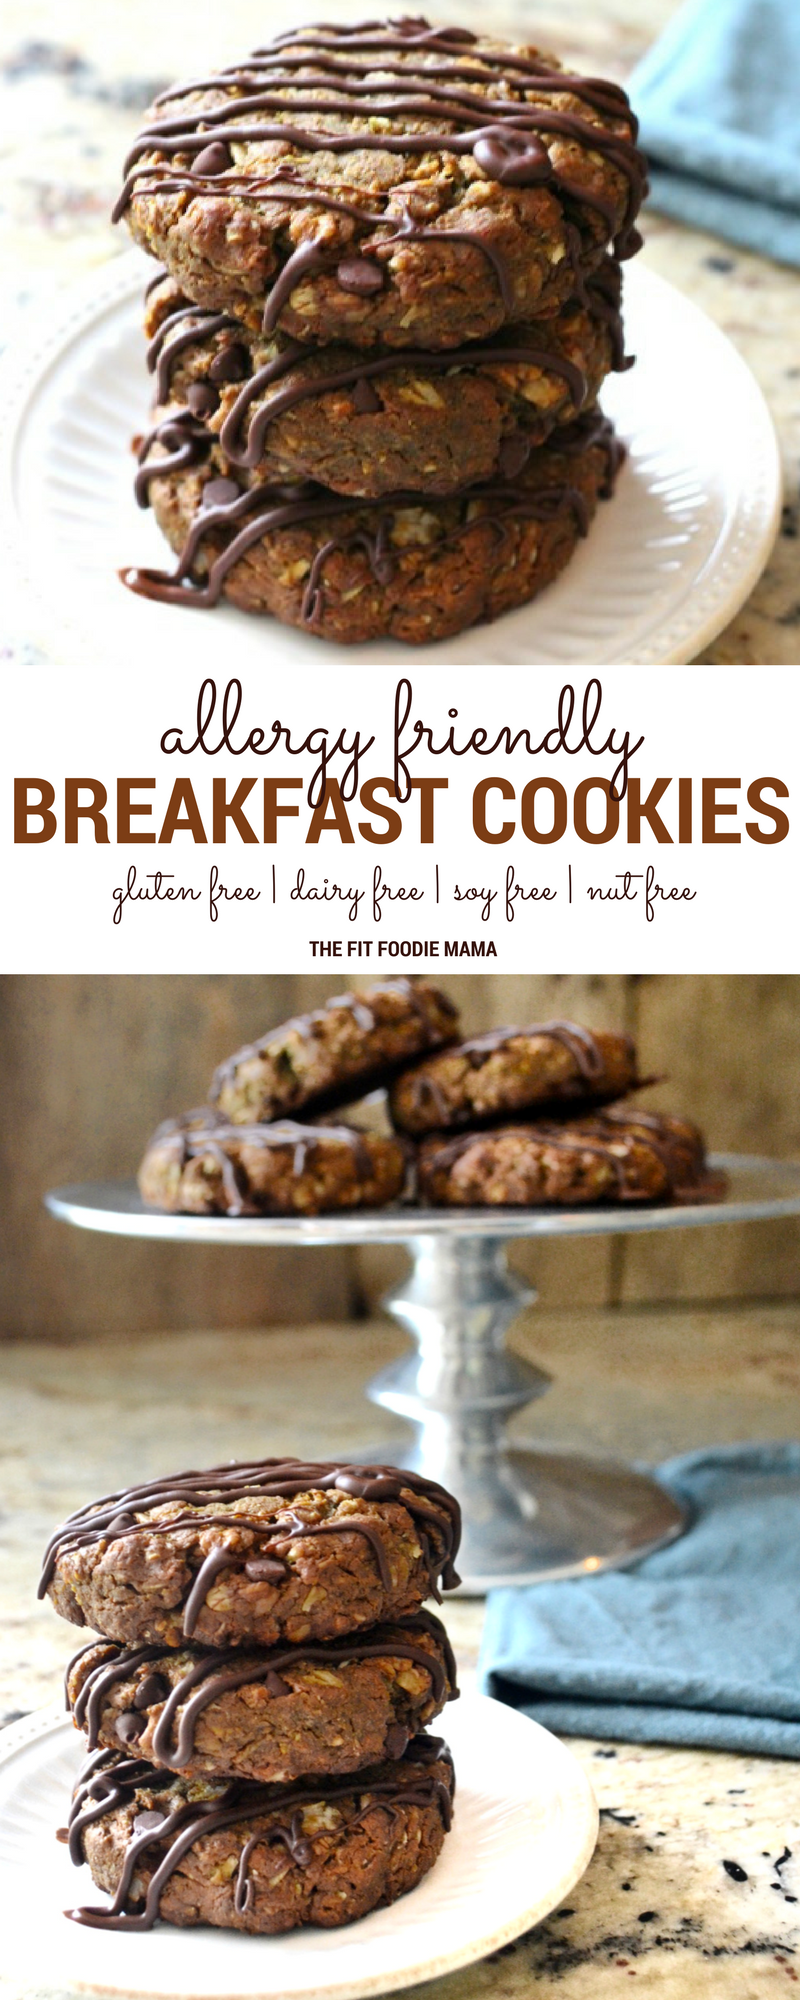 The Easiest Allergy Friendly Oatmeal Chocolate Chip Breakfast Cookies! They're gluten free, dairy free, soy free, nut free and vegan friendly as well as naturally sweetened. Perfect as a on the go breakfast before school or healthy way to fuel your next workout. Find the recipe on TheFitFoodieMama.com